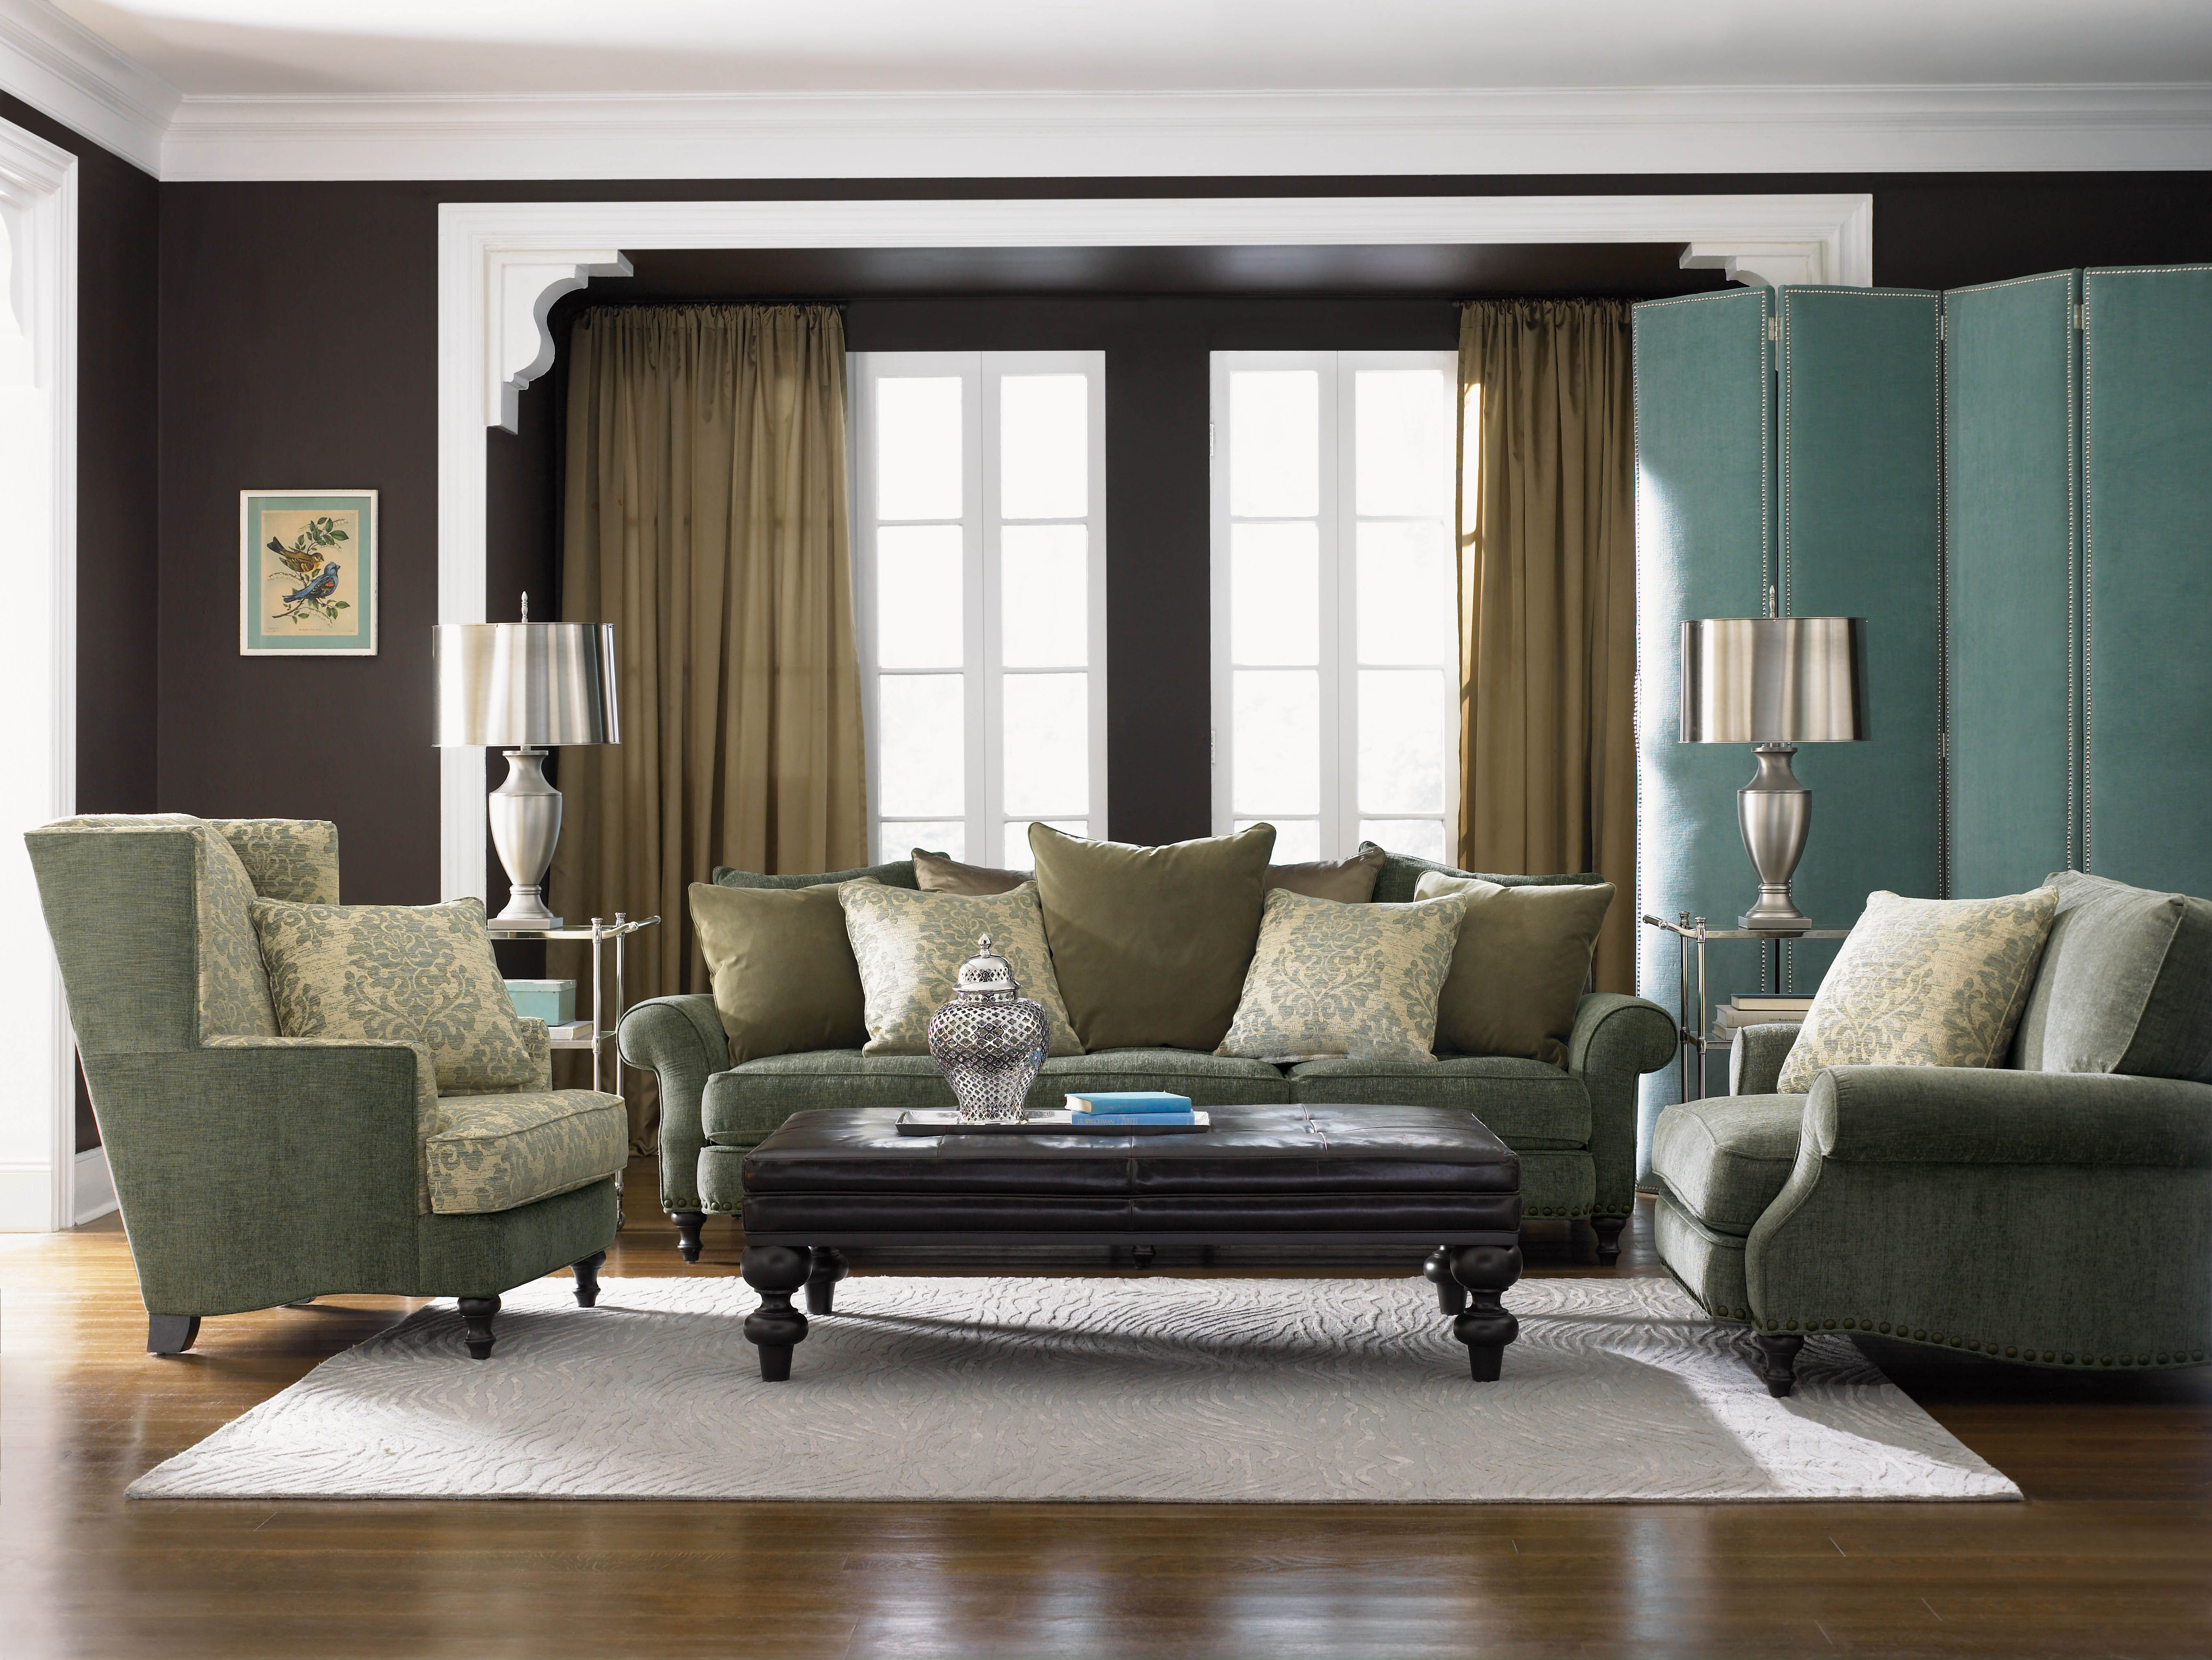 Sequoia sofa loveseat chair ottoman accent chairs ottomans also available